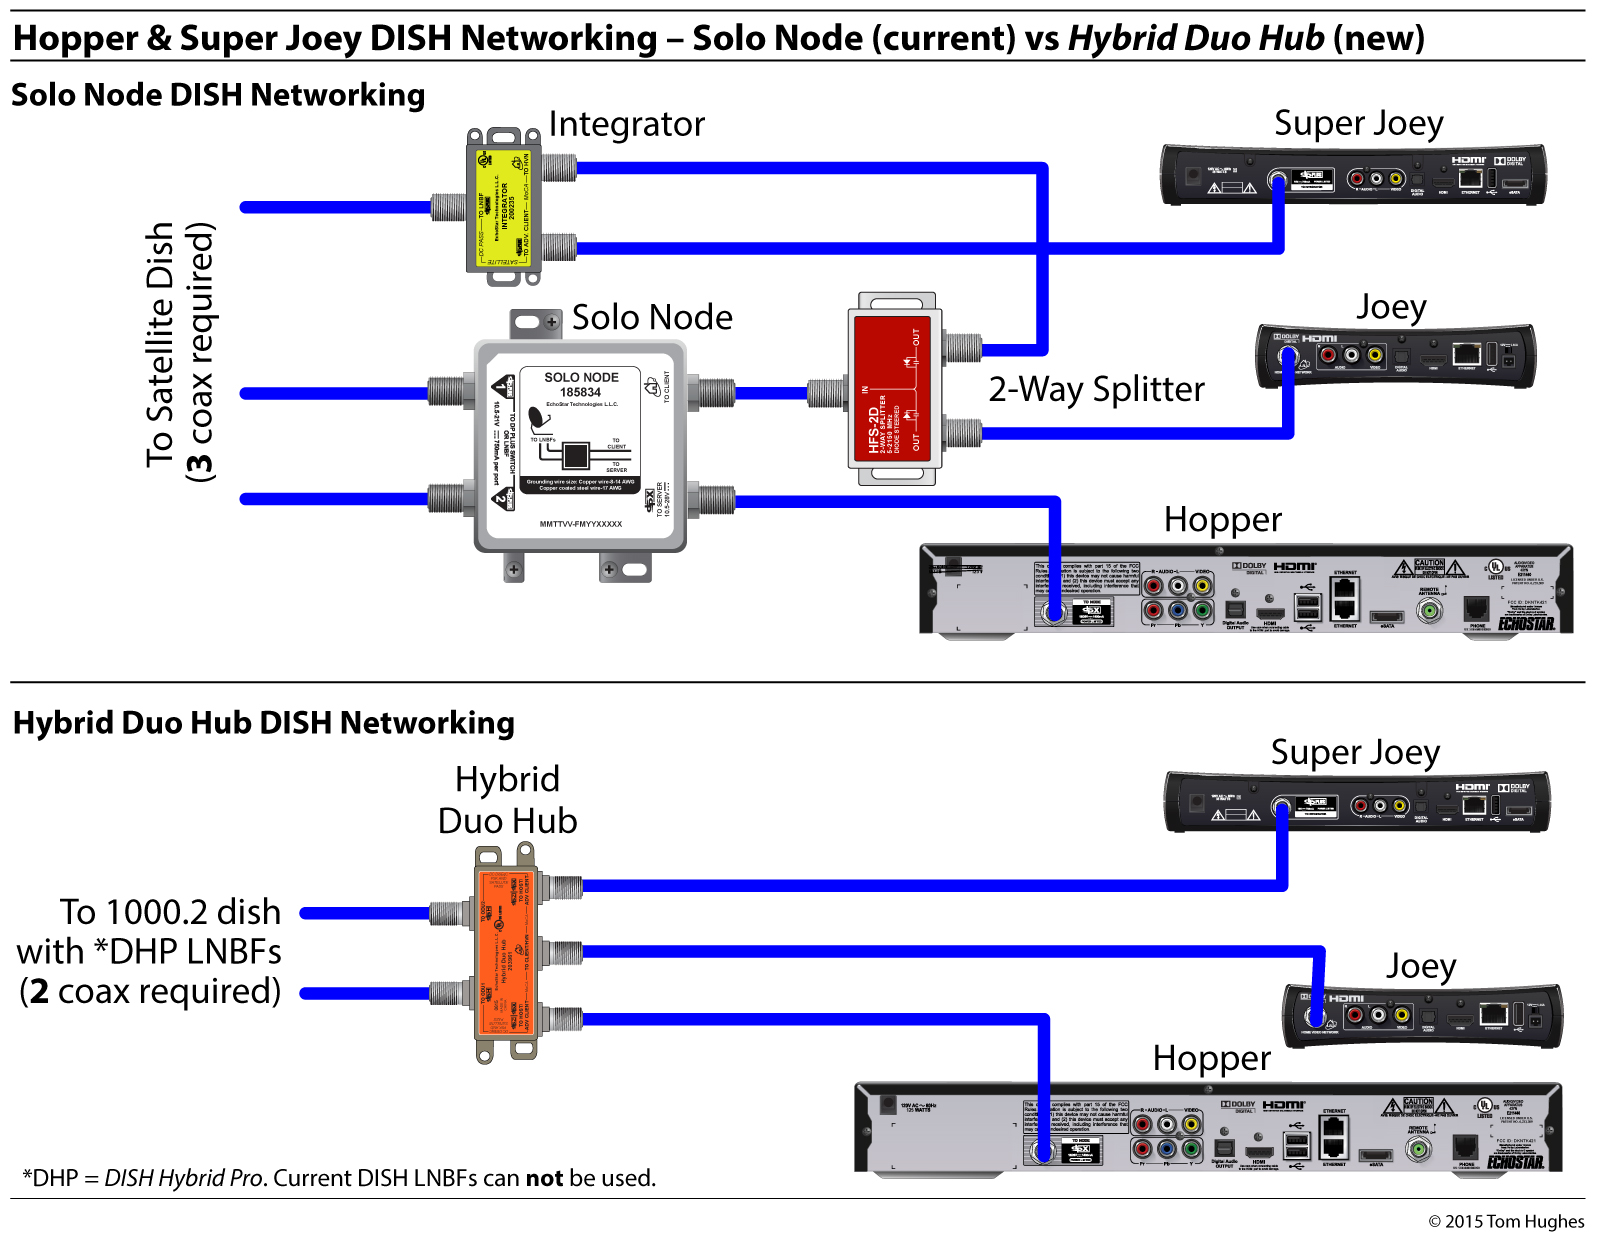 2 hopper superjoey solo node vs solo hub dish network wiring diagram hopper dish network wiring diagram  at crackthecode.co